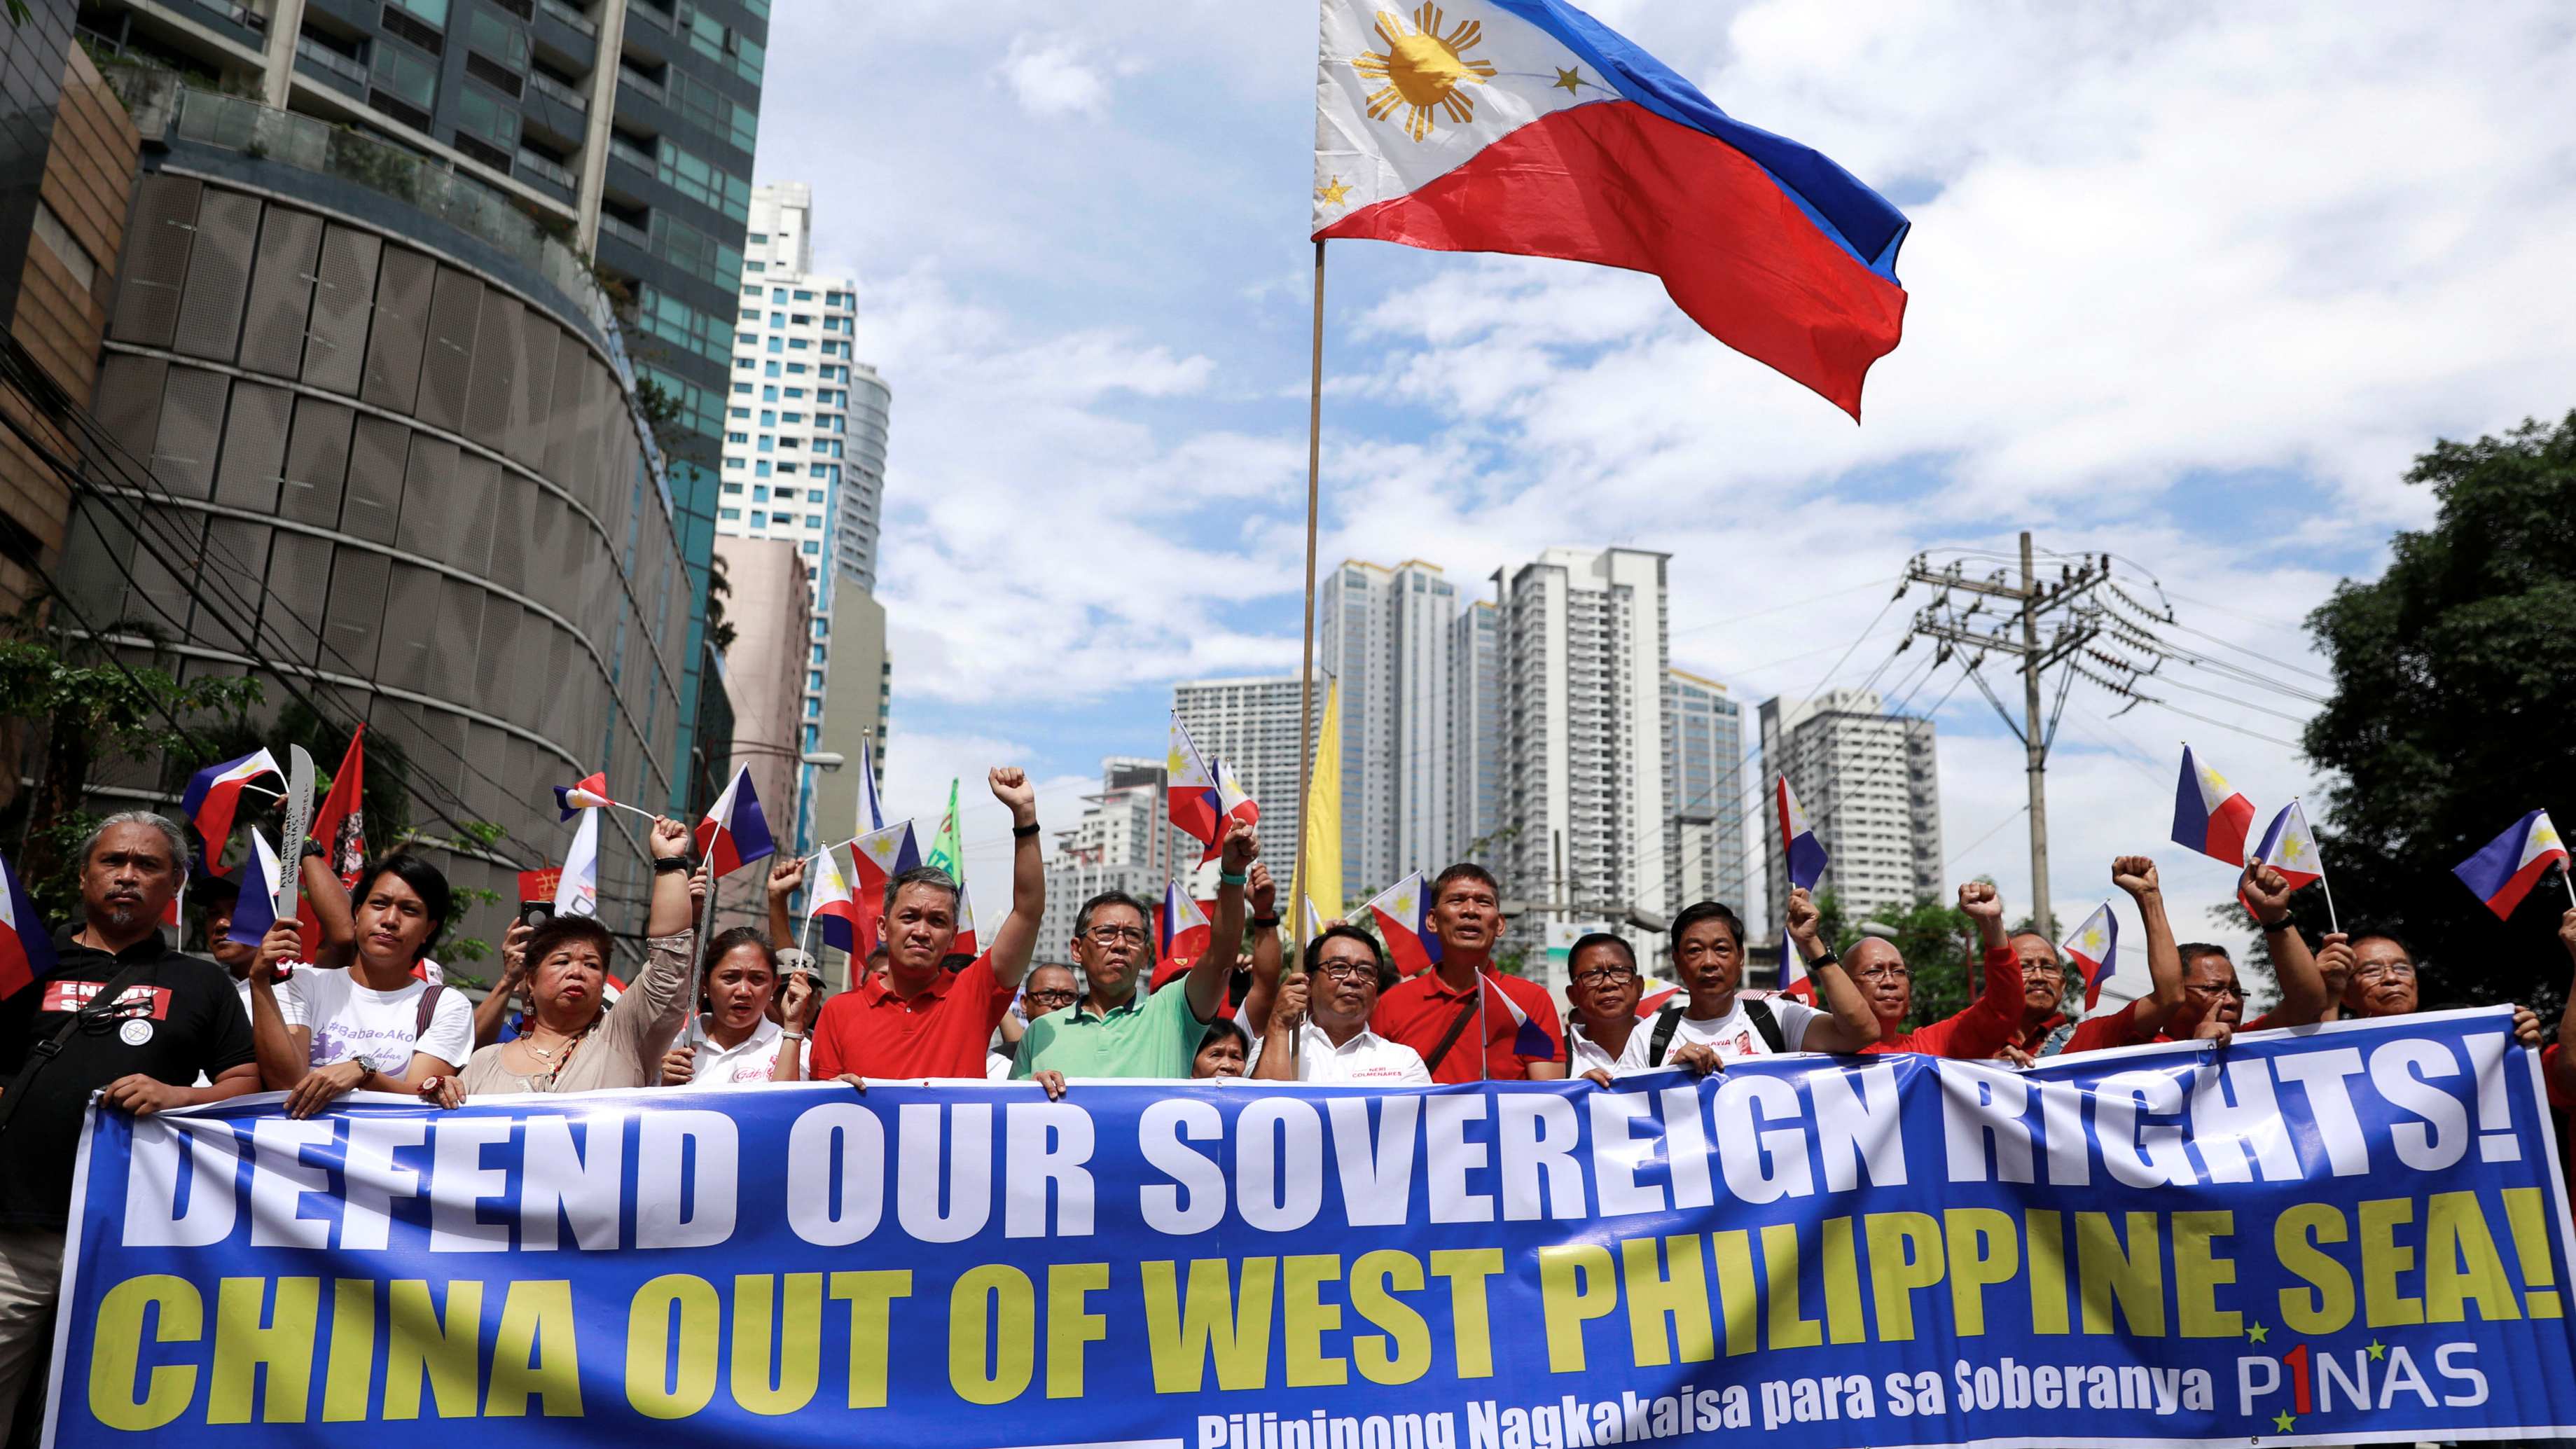 protesters carry blue and red signs saying 'defend our sovereignty'